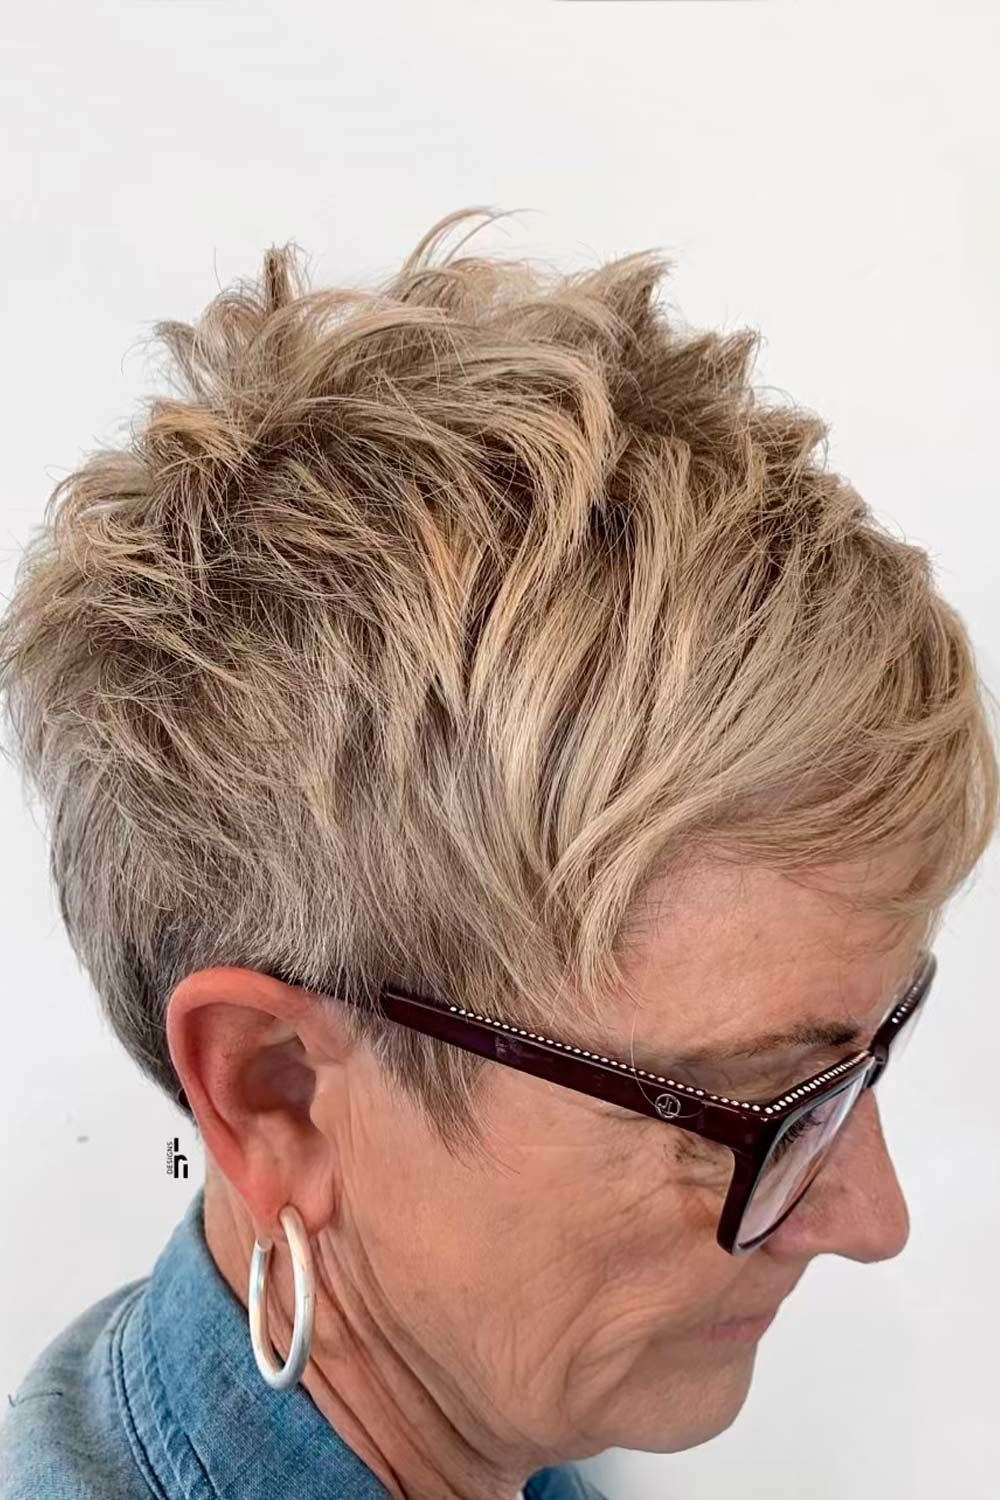 Messy Styling For Short Pixie, pixie haircut over 50, pixie haircuts for older women